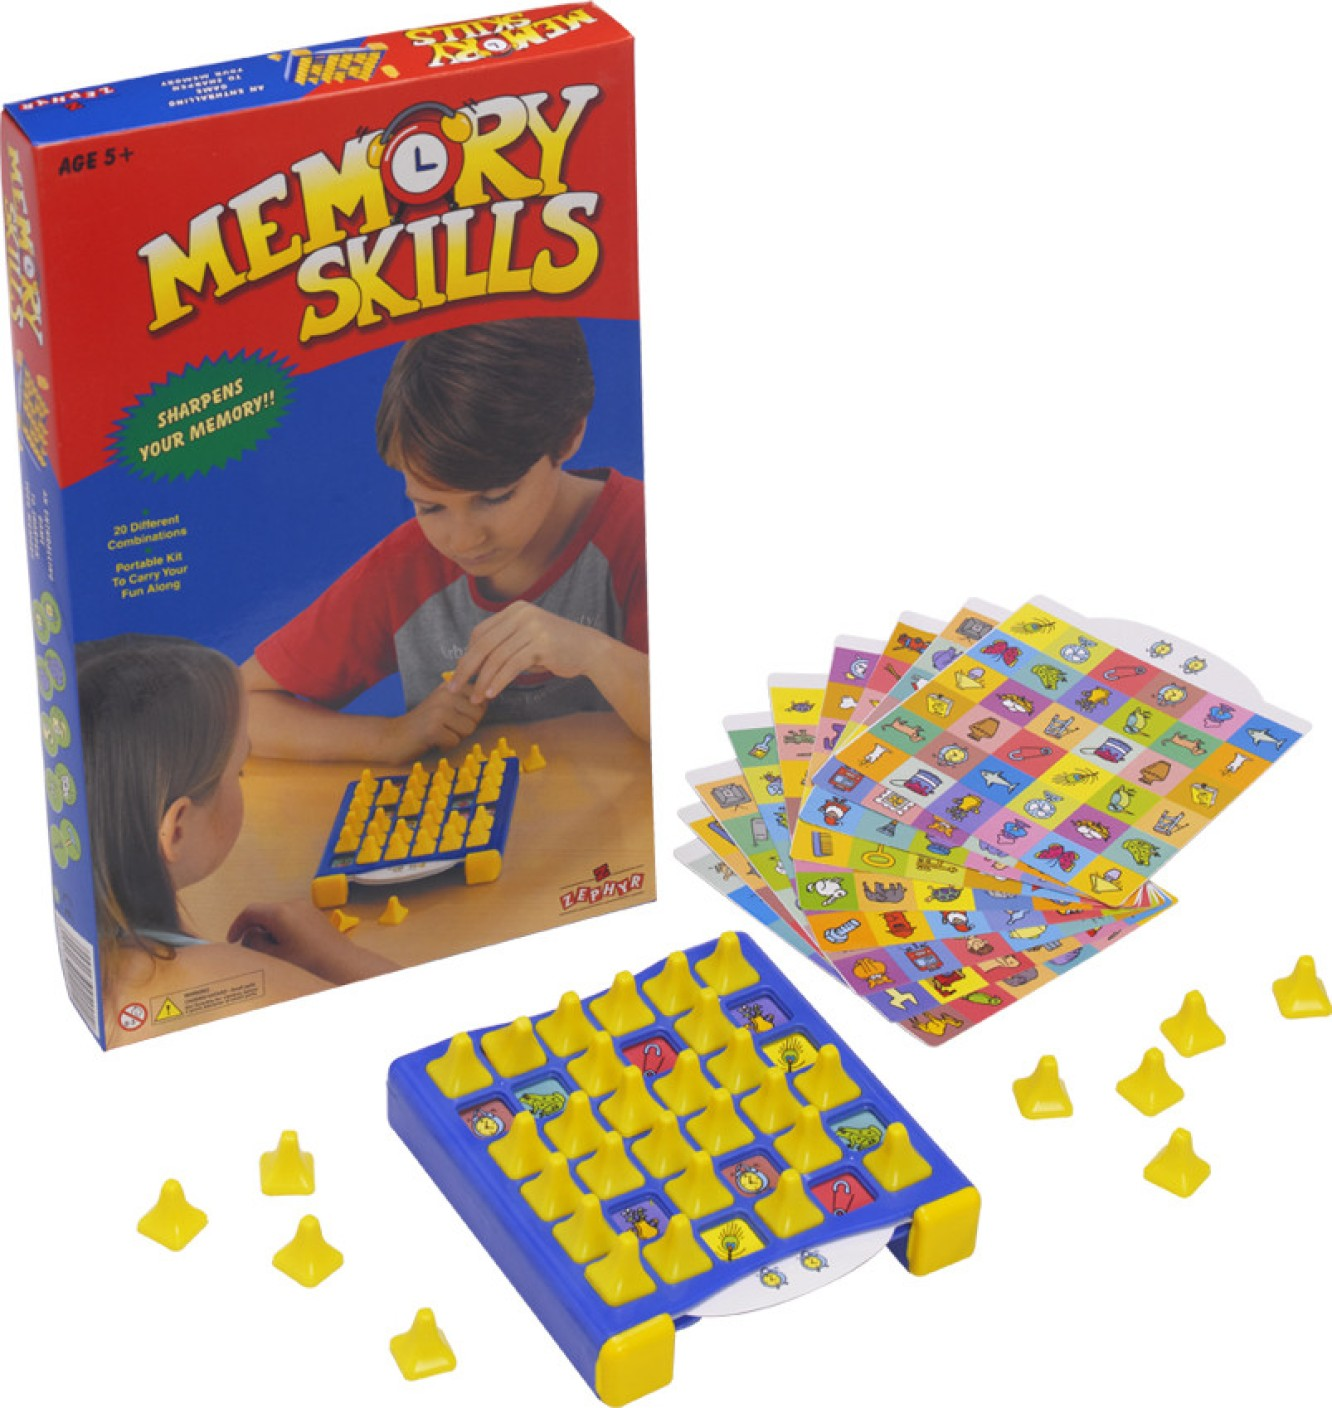 Zephyr Memory Skills Price in India - Buy Zephyr Memory Skills ...